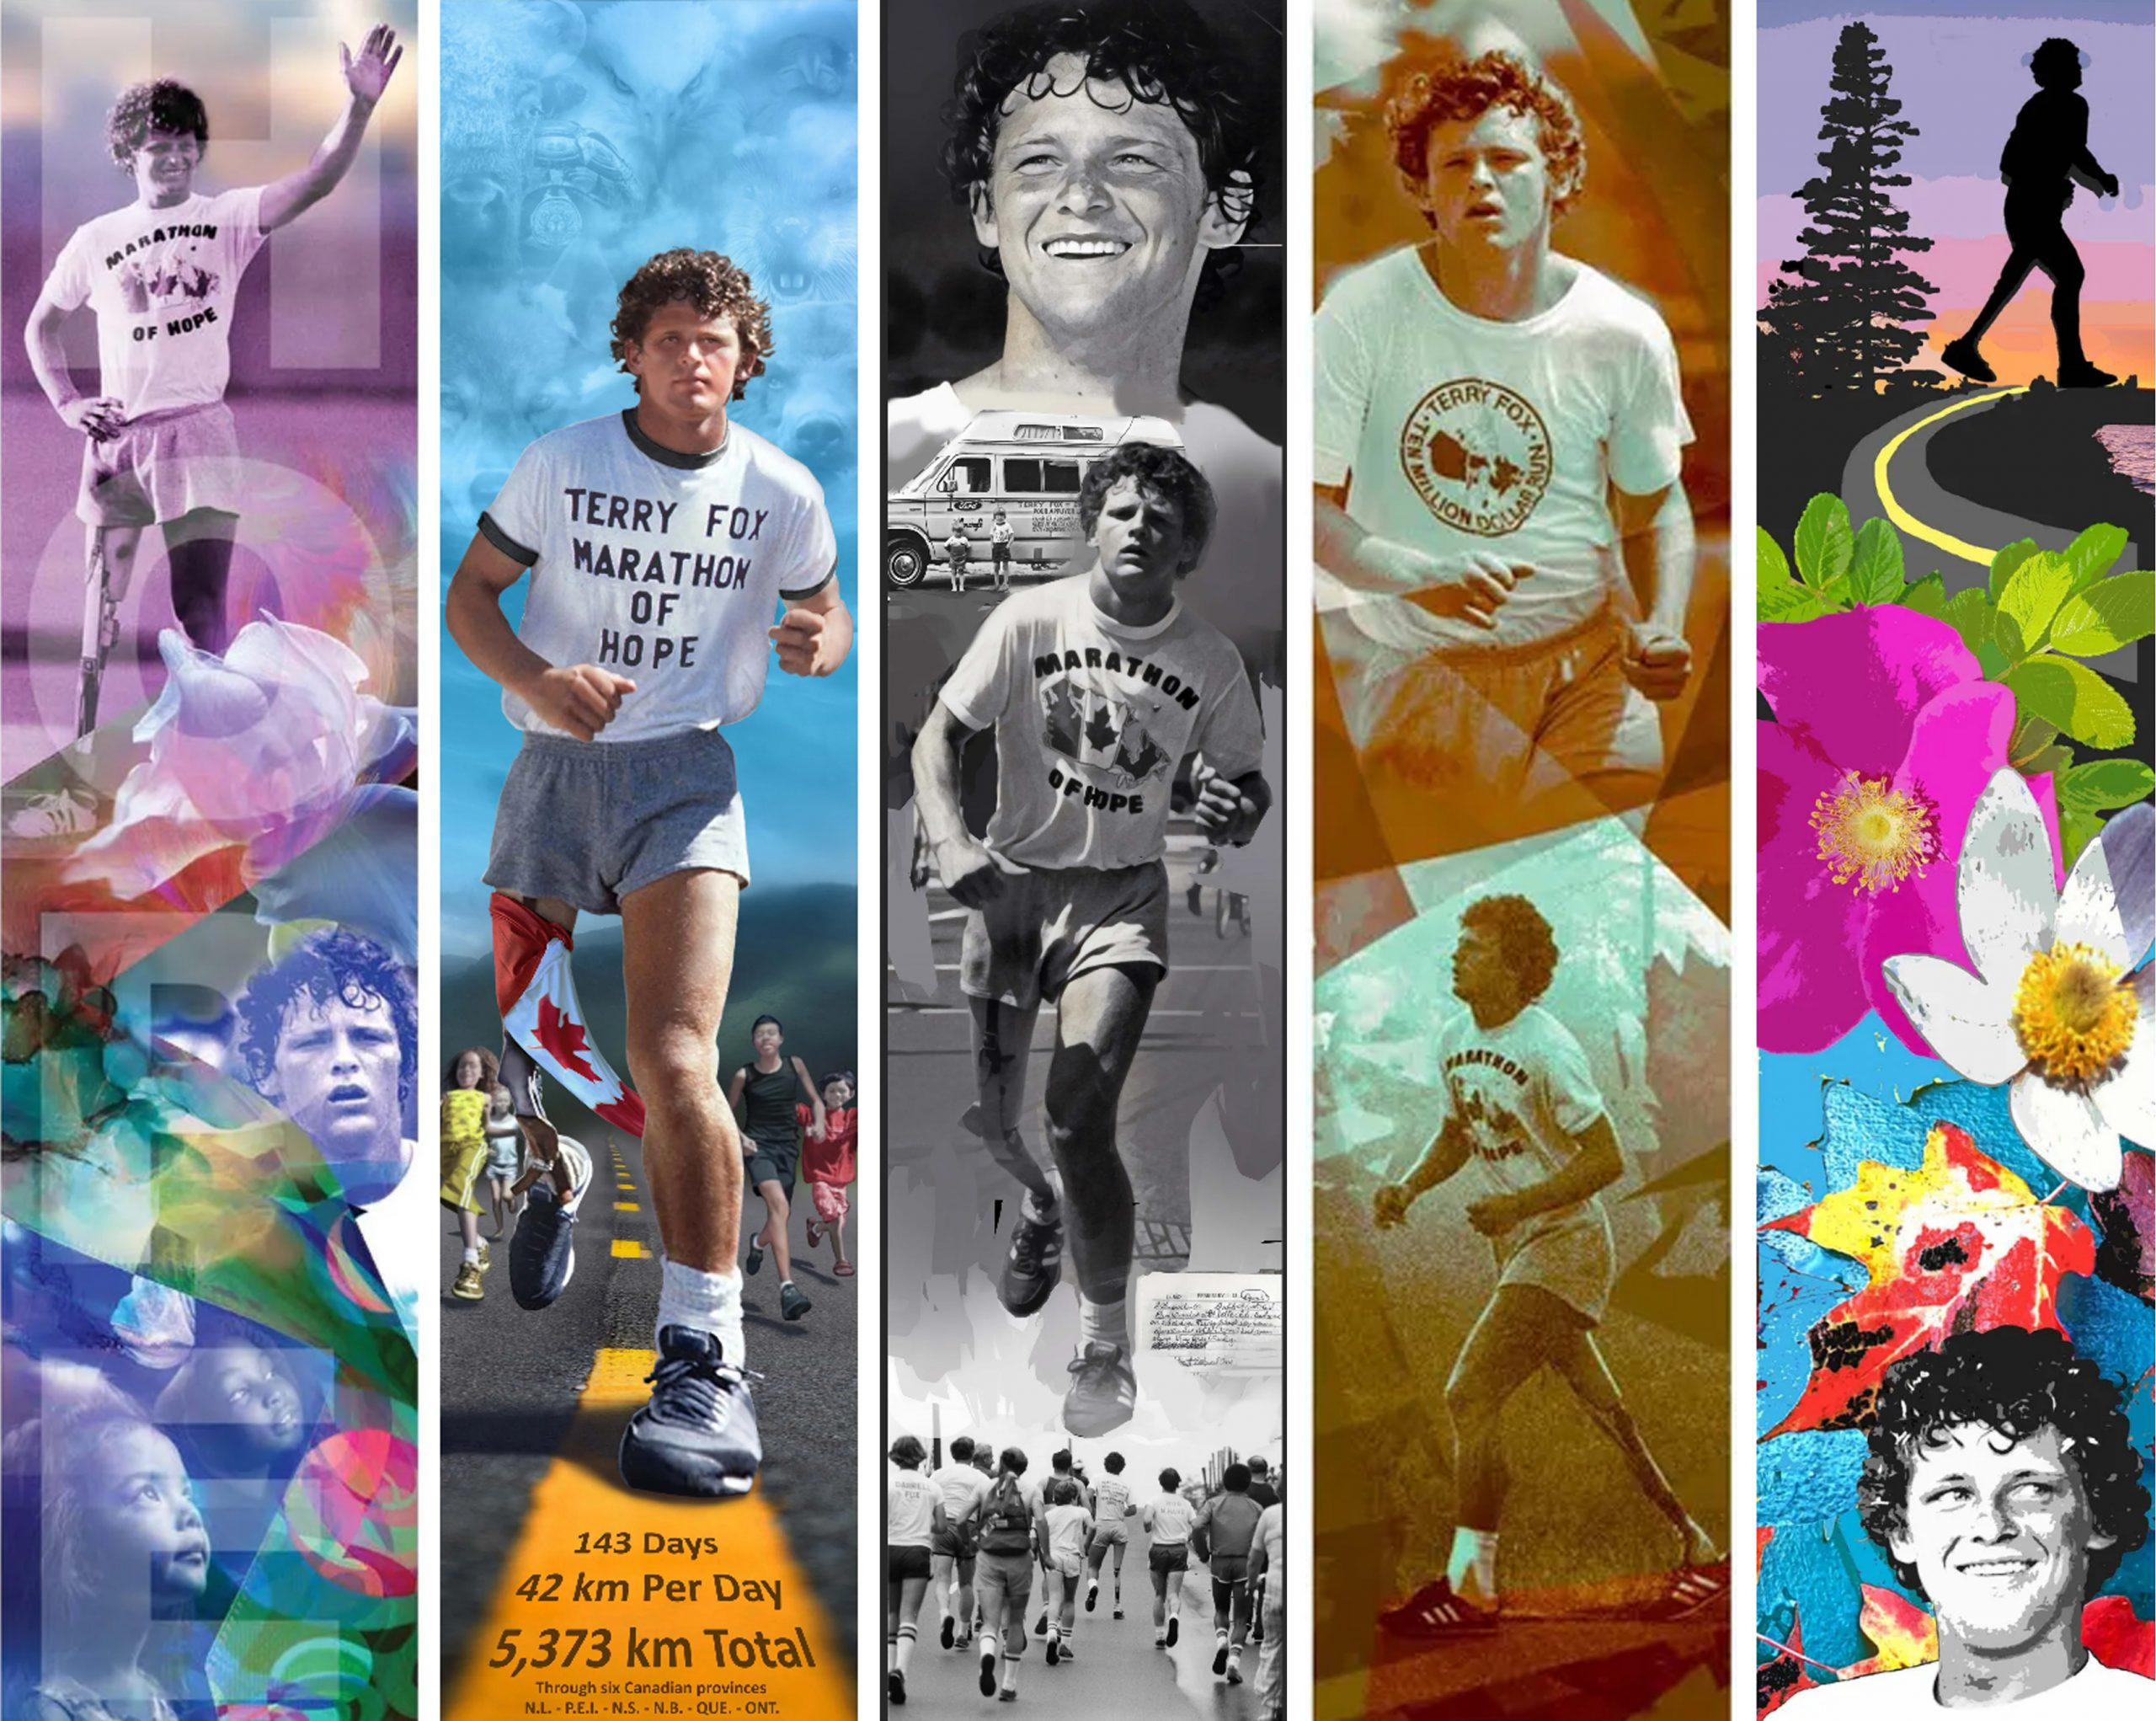 Large-scale landmark mural honouring Terry Fox planned for downtown Toronto